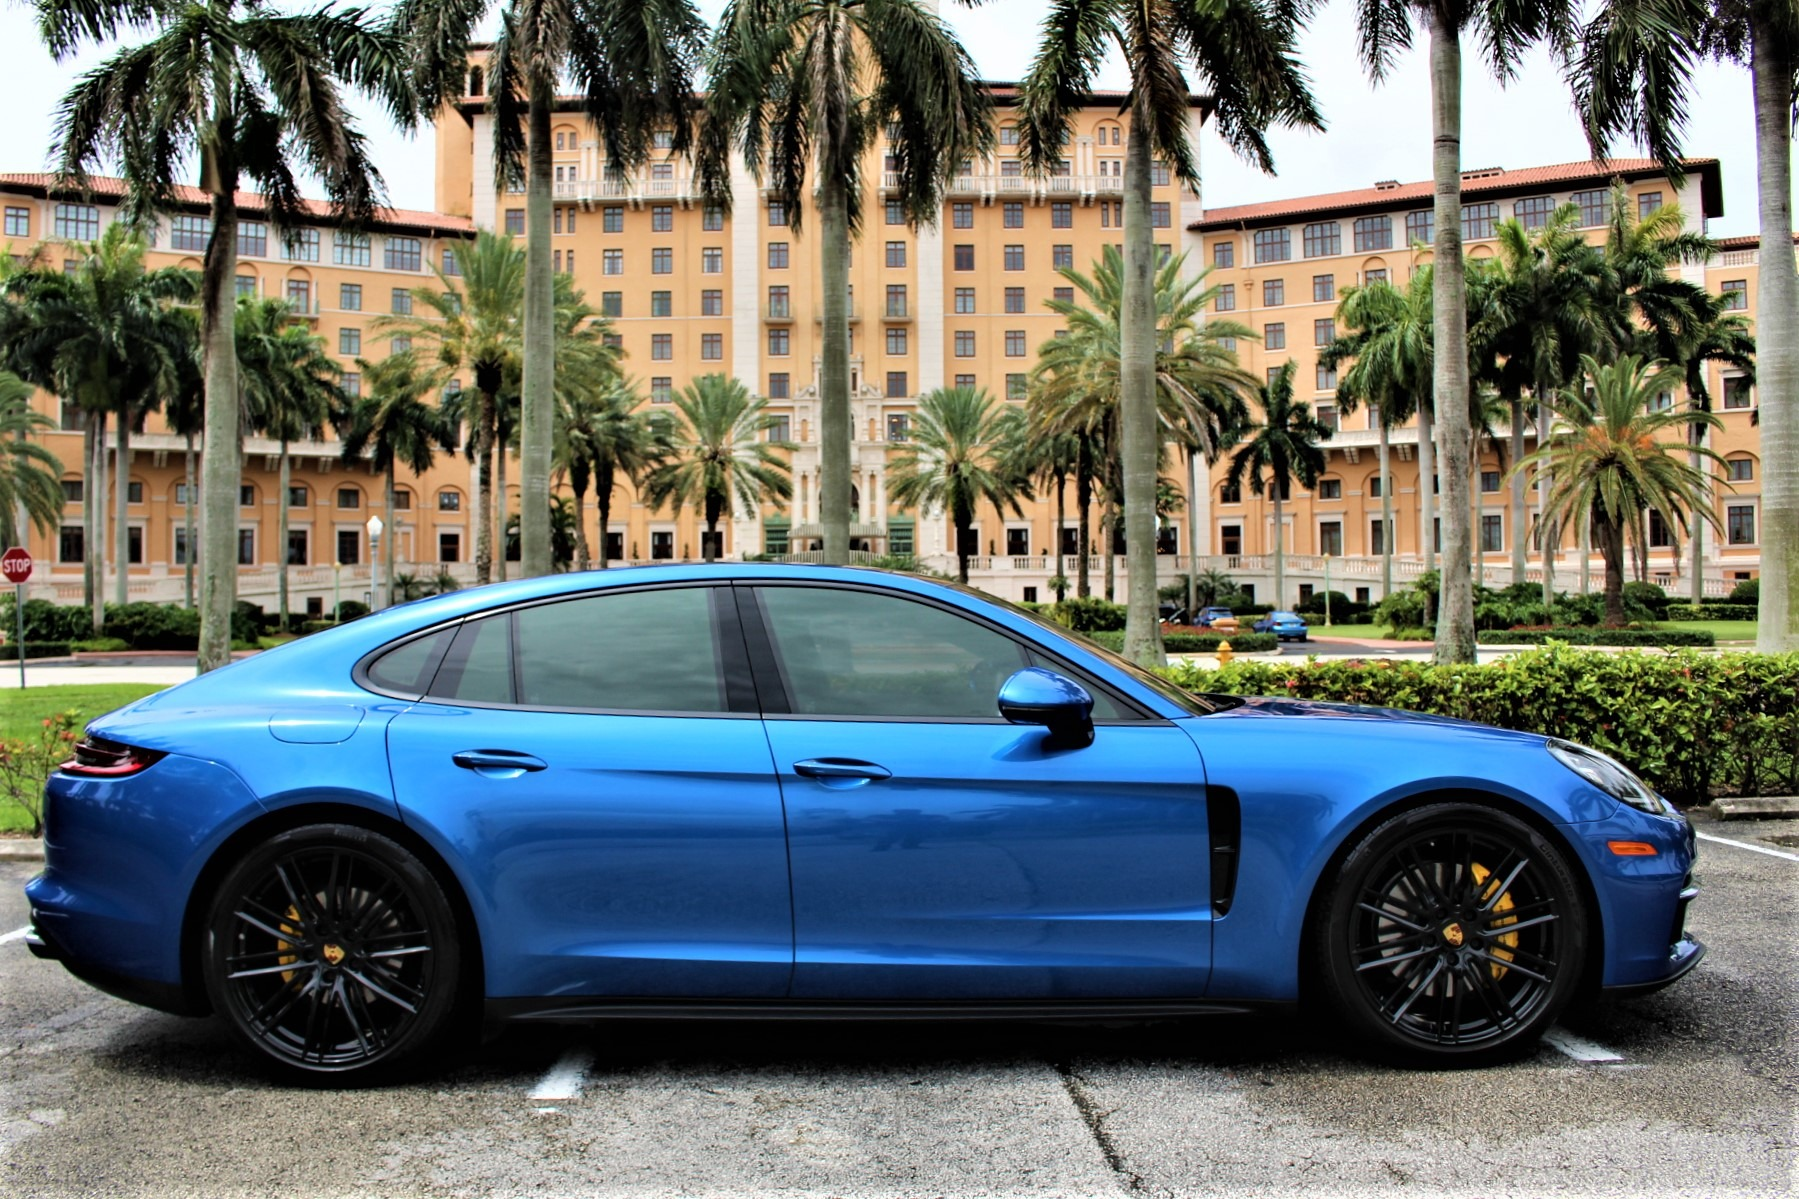 Used 2017 Porsche Panamera 4S for sale Sold at The Gables Sports Cars in Miami FL 33146 4